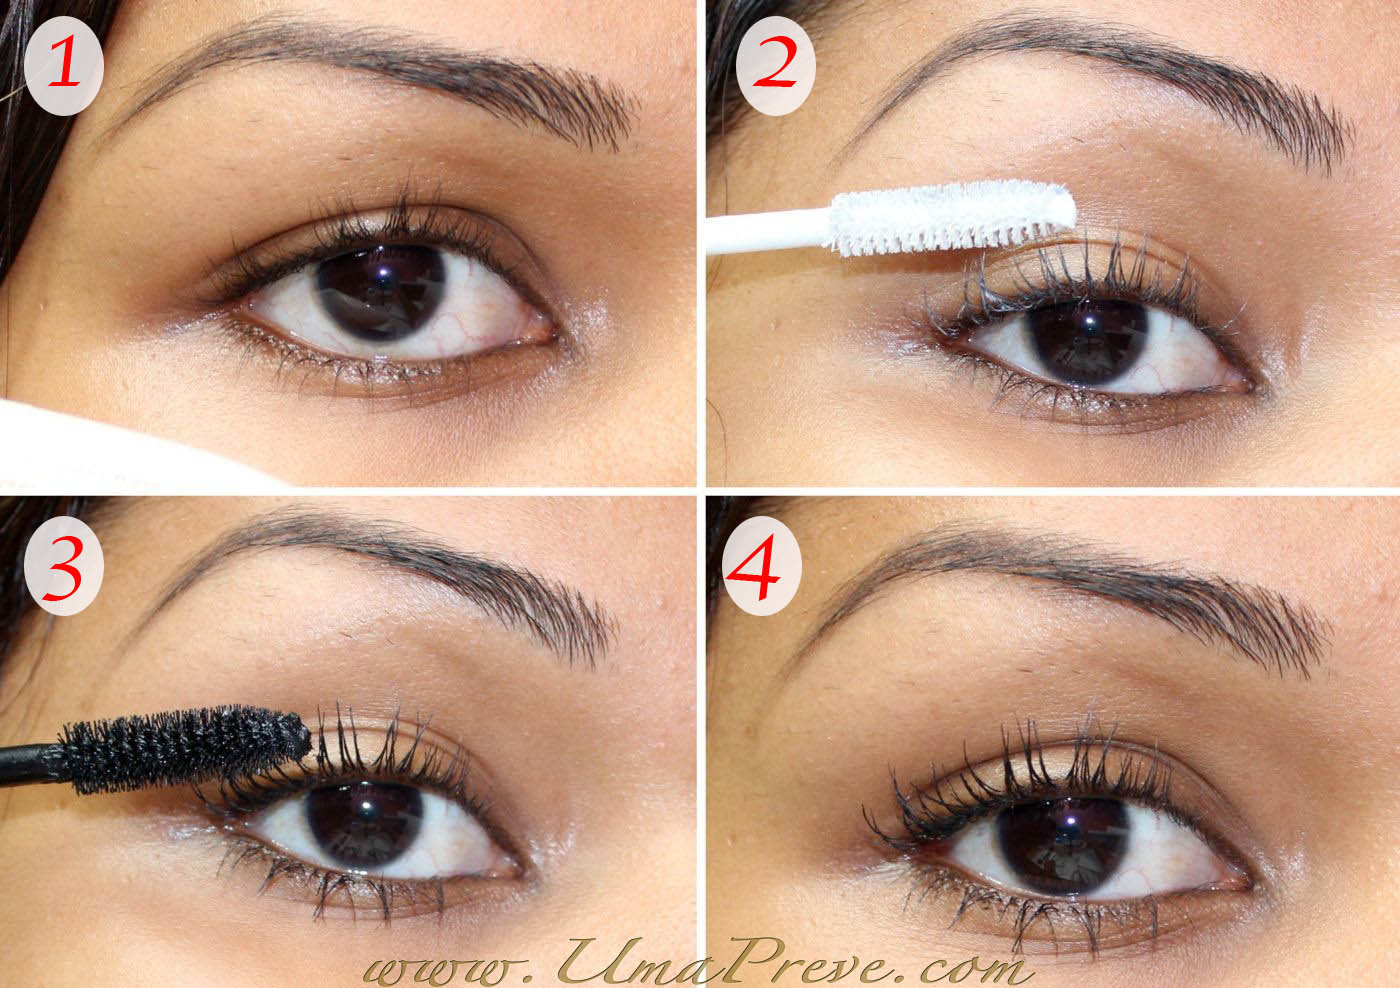 Forum on this topic: 3 Steps to Flirty Eyelashes, 3-steps-to-flirty-eyelashes/